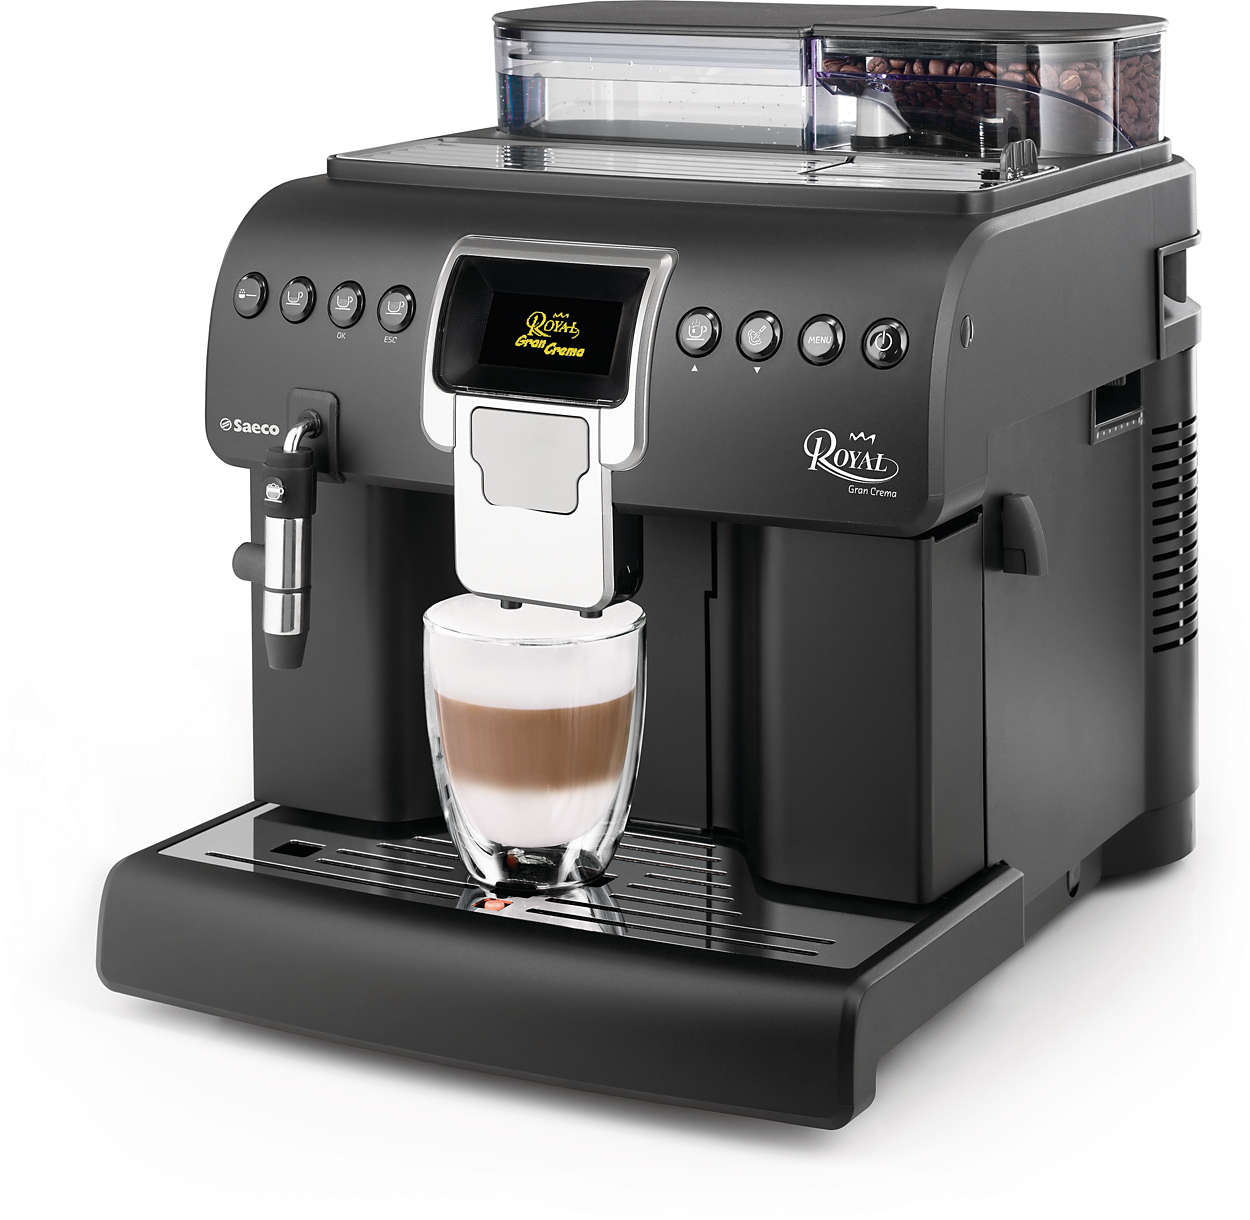 Saeco Coffee Maker Reviews Ratings : Saeco Automatic Coffee Machines - South Africa s Brand History and Product Reviews